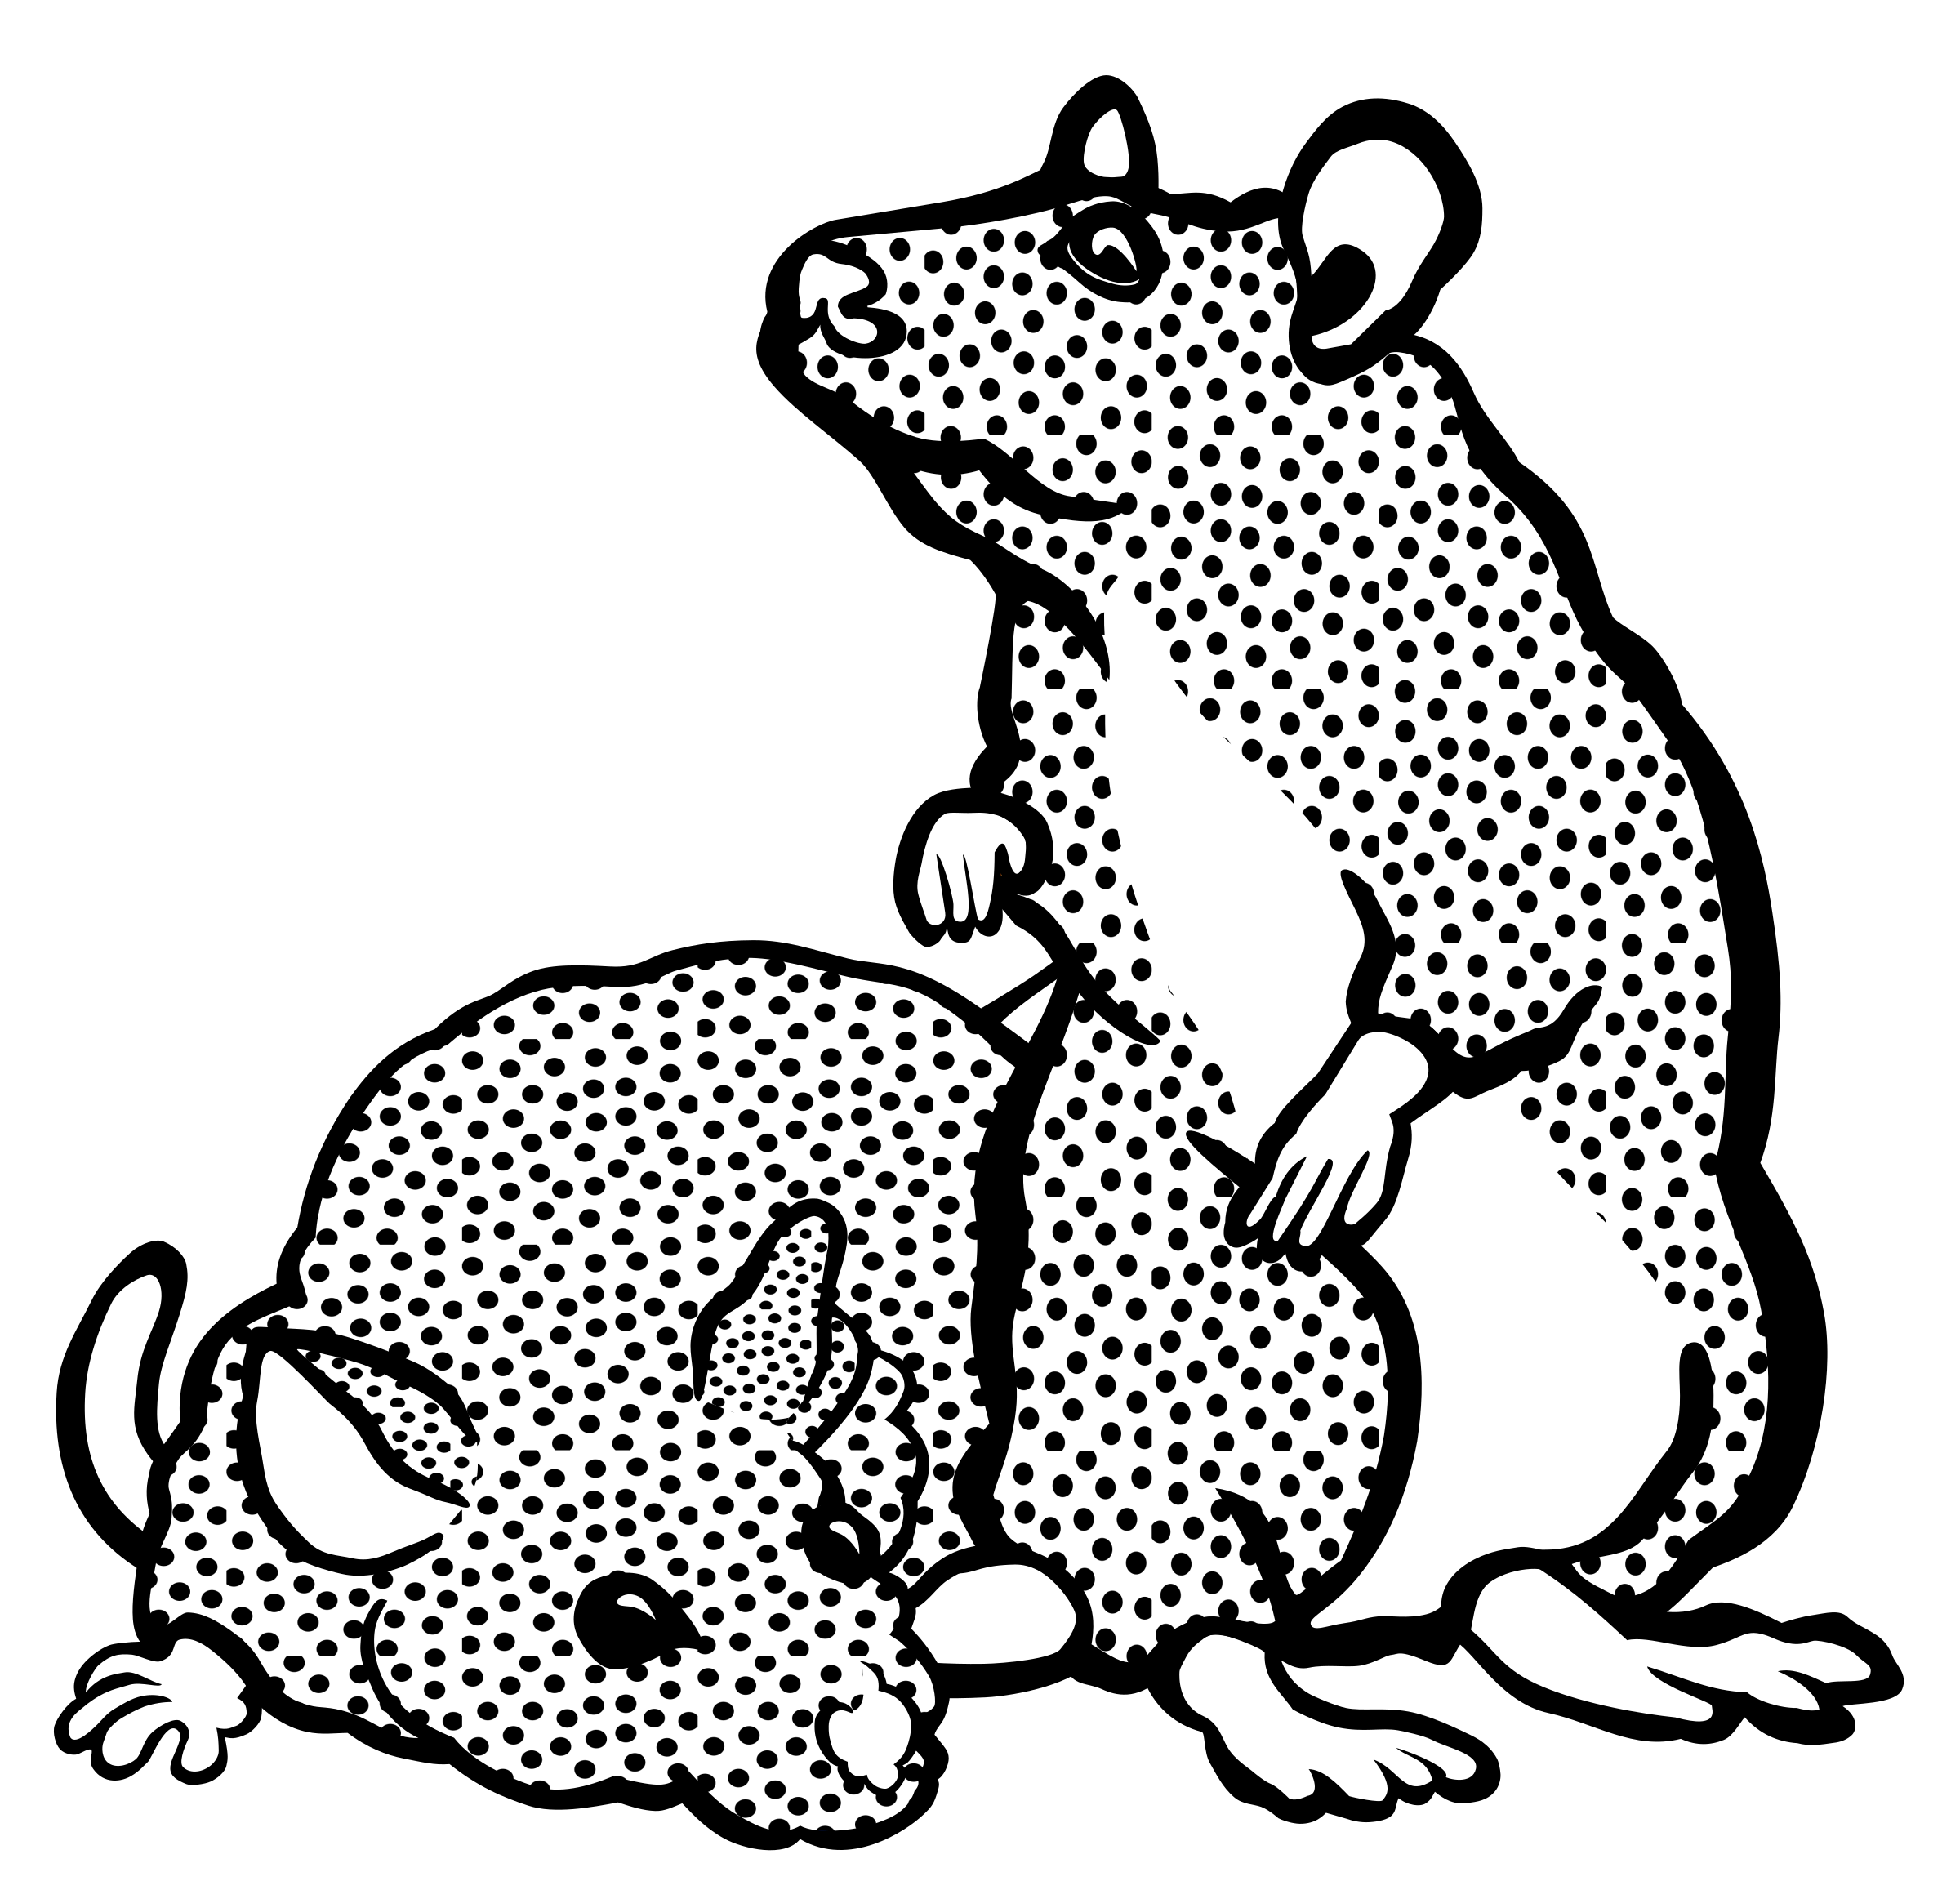 Mice clipart line art. Lineart big image png